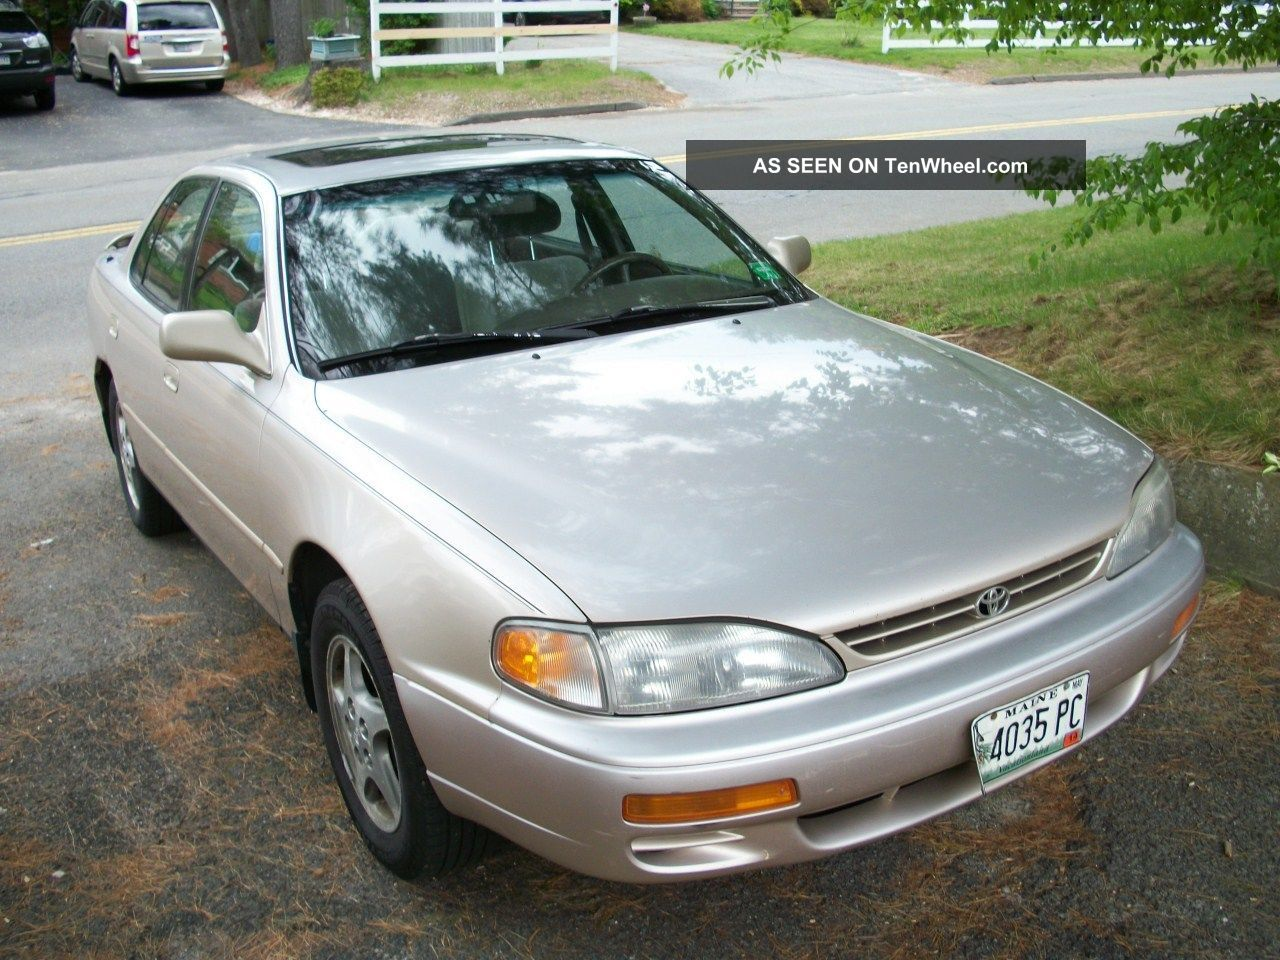 1996 Toyota Camry Camry V6le Gold Chrome Wheels Automatic 3l V6 Camry photo